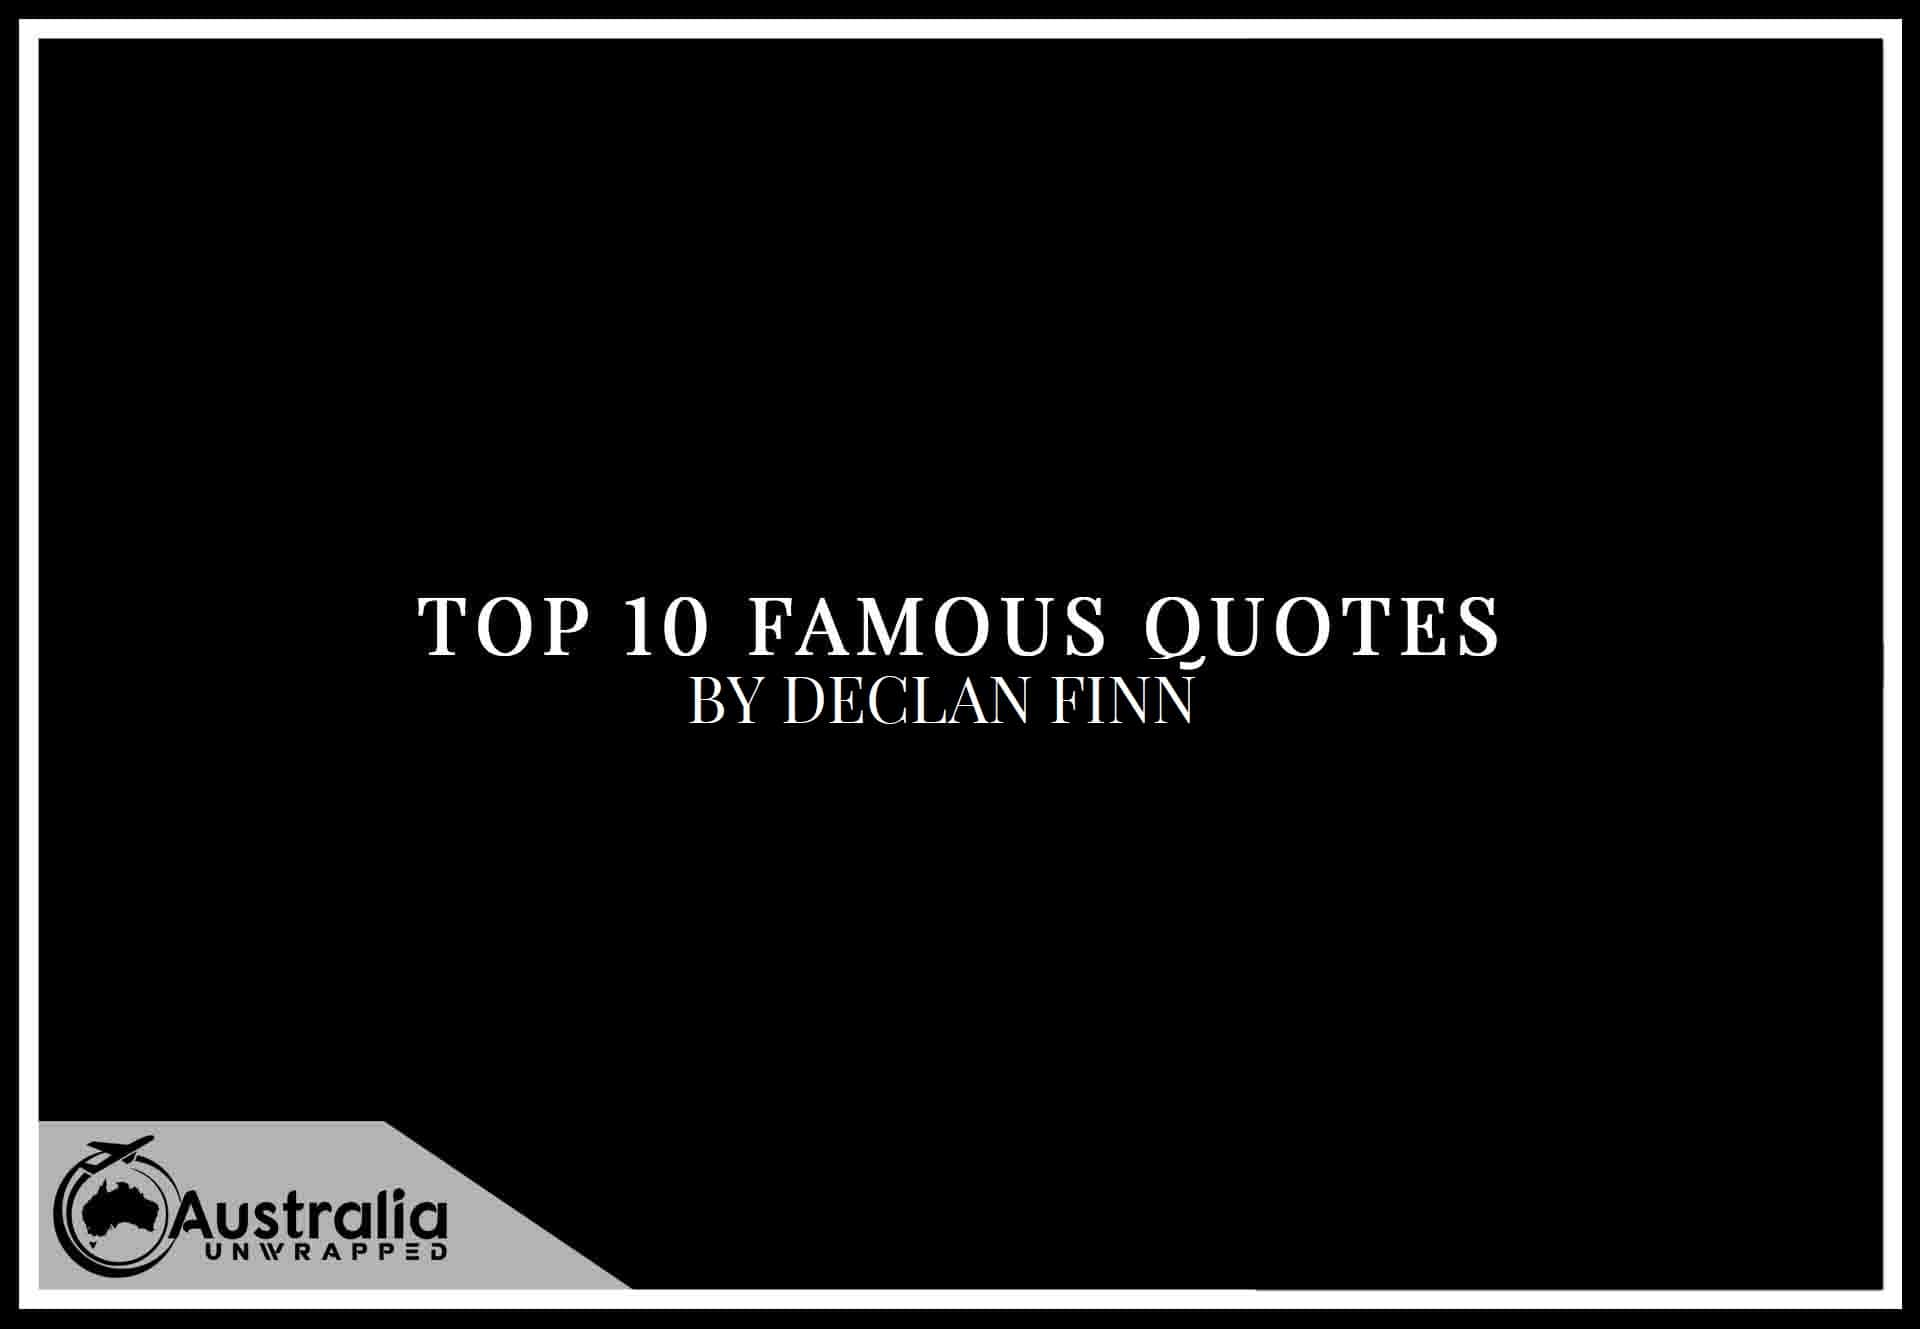 Top 10 Famous Quotes by Author Declan Finn